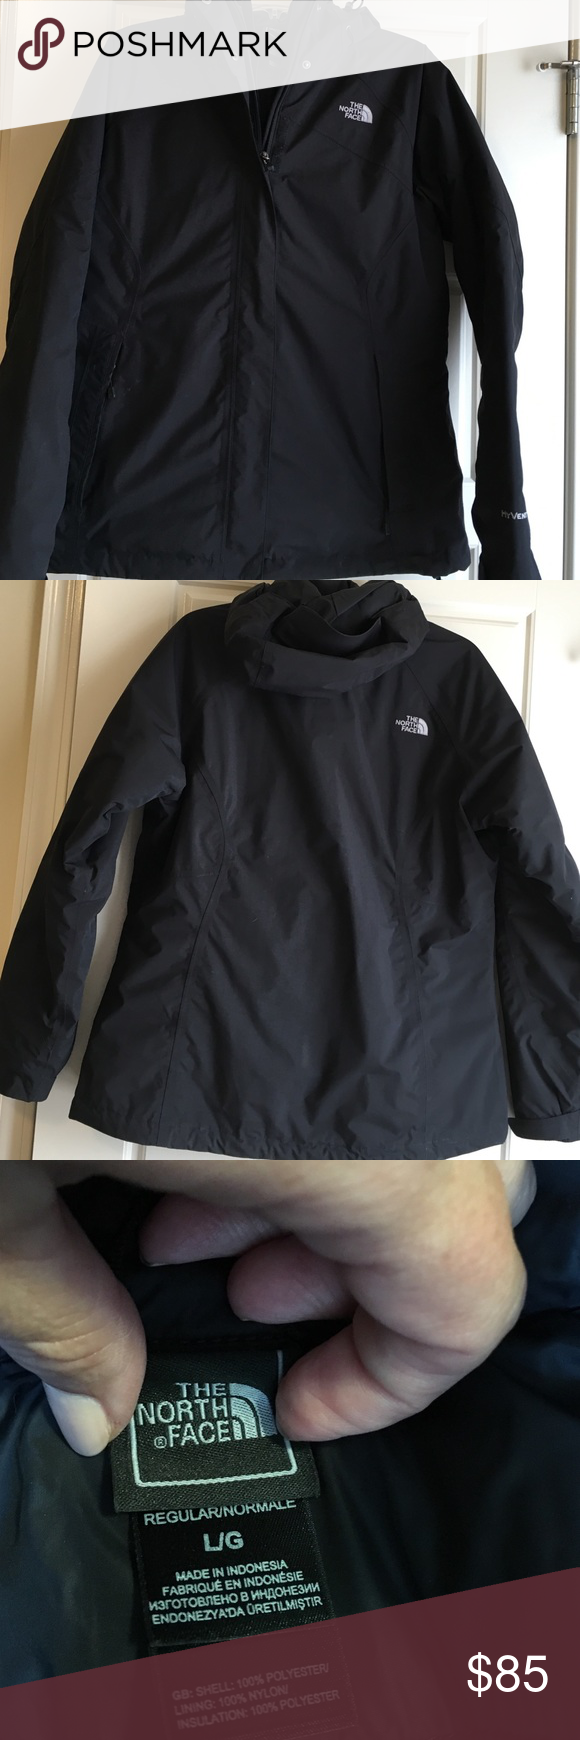 Women's The North Face Dual-Climate HyVent coat Women's The North Face Dual-Climate HyVent coat. Size Large. It's like 2 coats in 1. You can use the puffer-like jacket on the inside of the shell jacket or use each separately. Very warm together. Excellent used condition. Smoke-free home The North Face Jackets & Coats